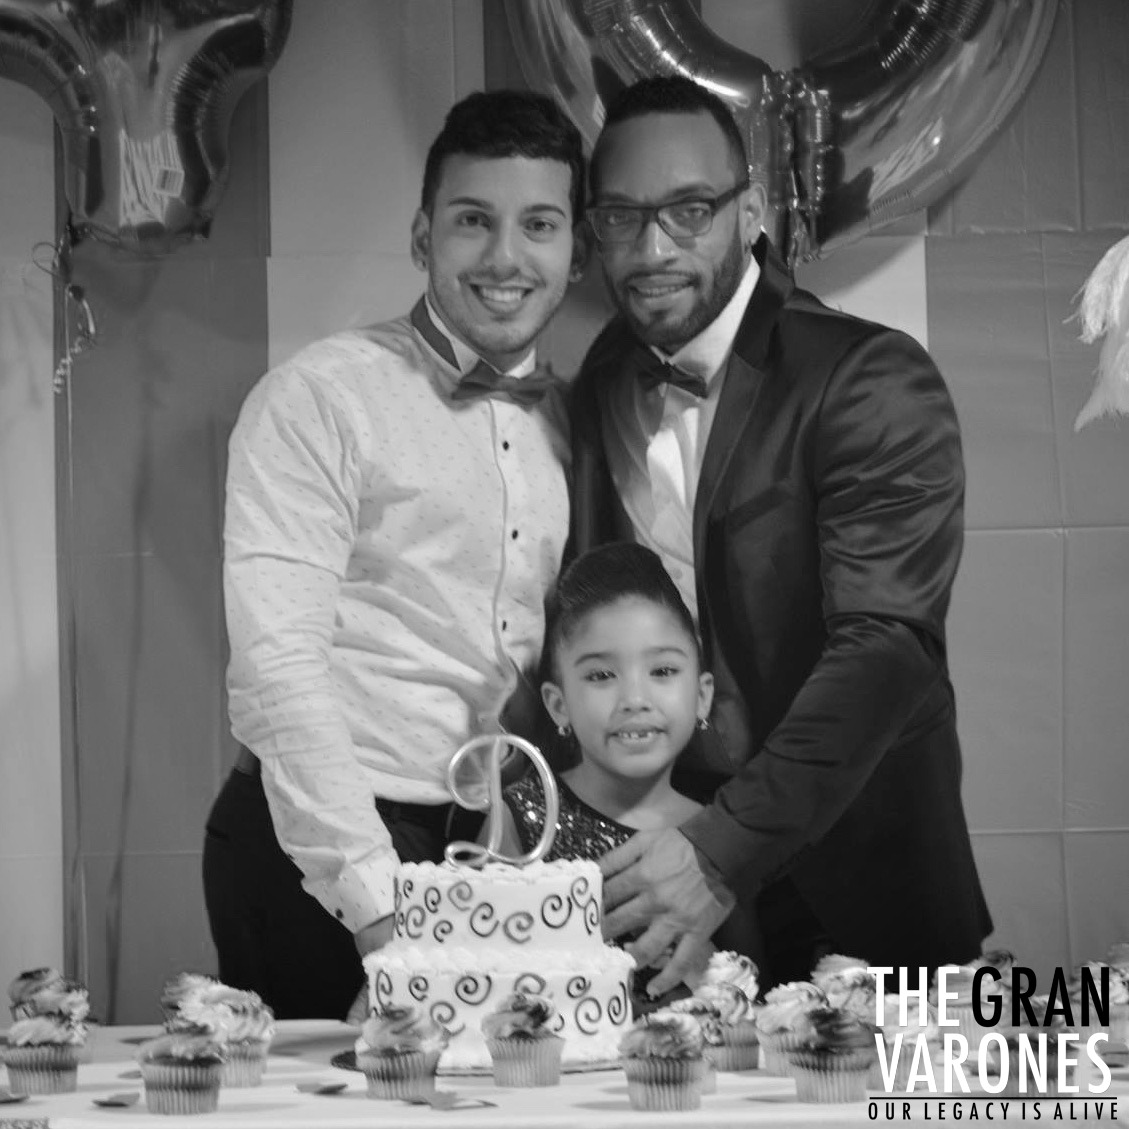 David and Carlos with their daughter Natalia